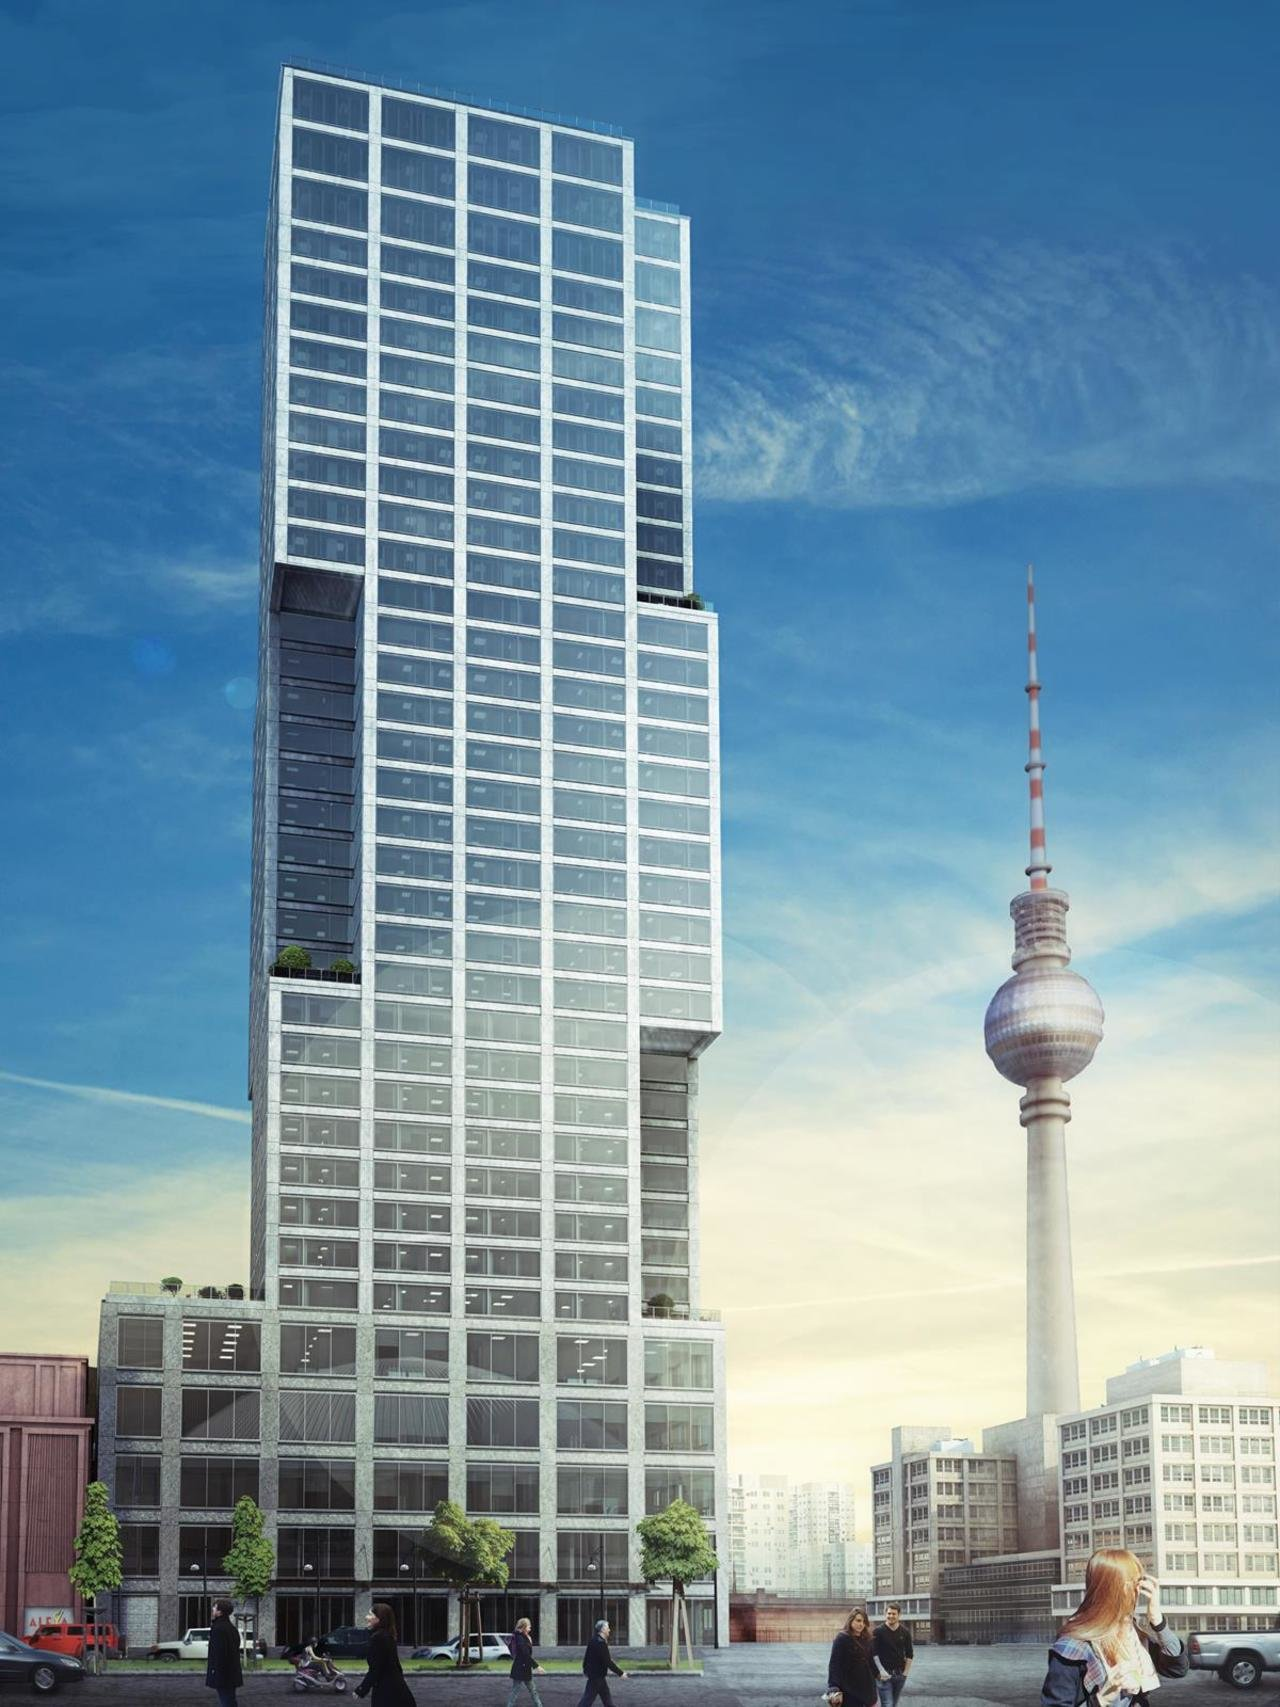 Alexander Tower will feature 377 apartments, plus commercial and retail space, over 35 floors.